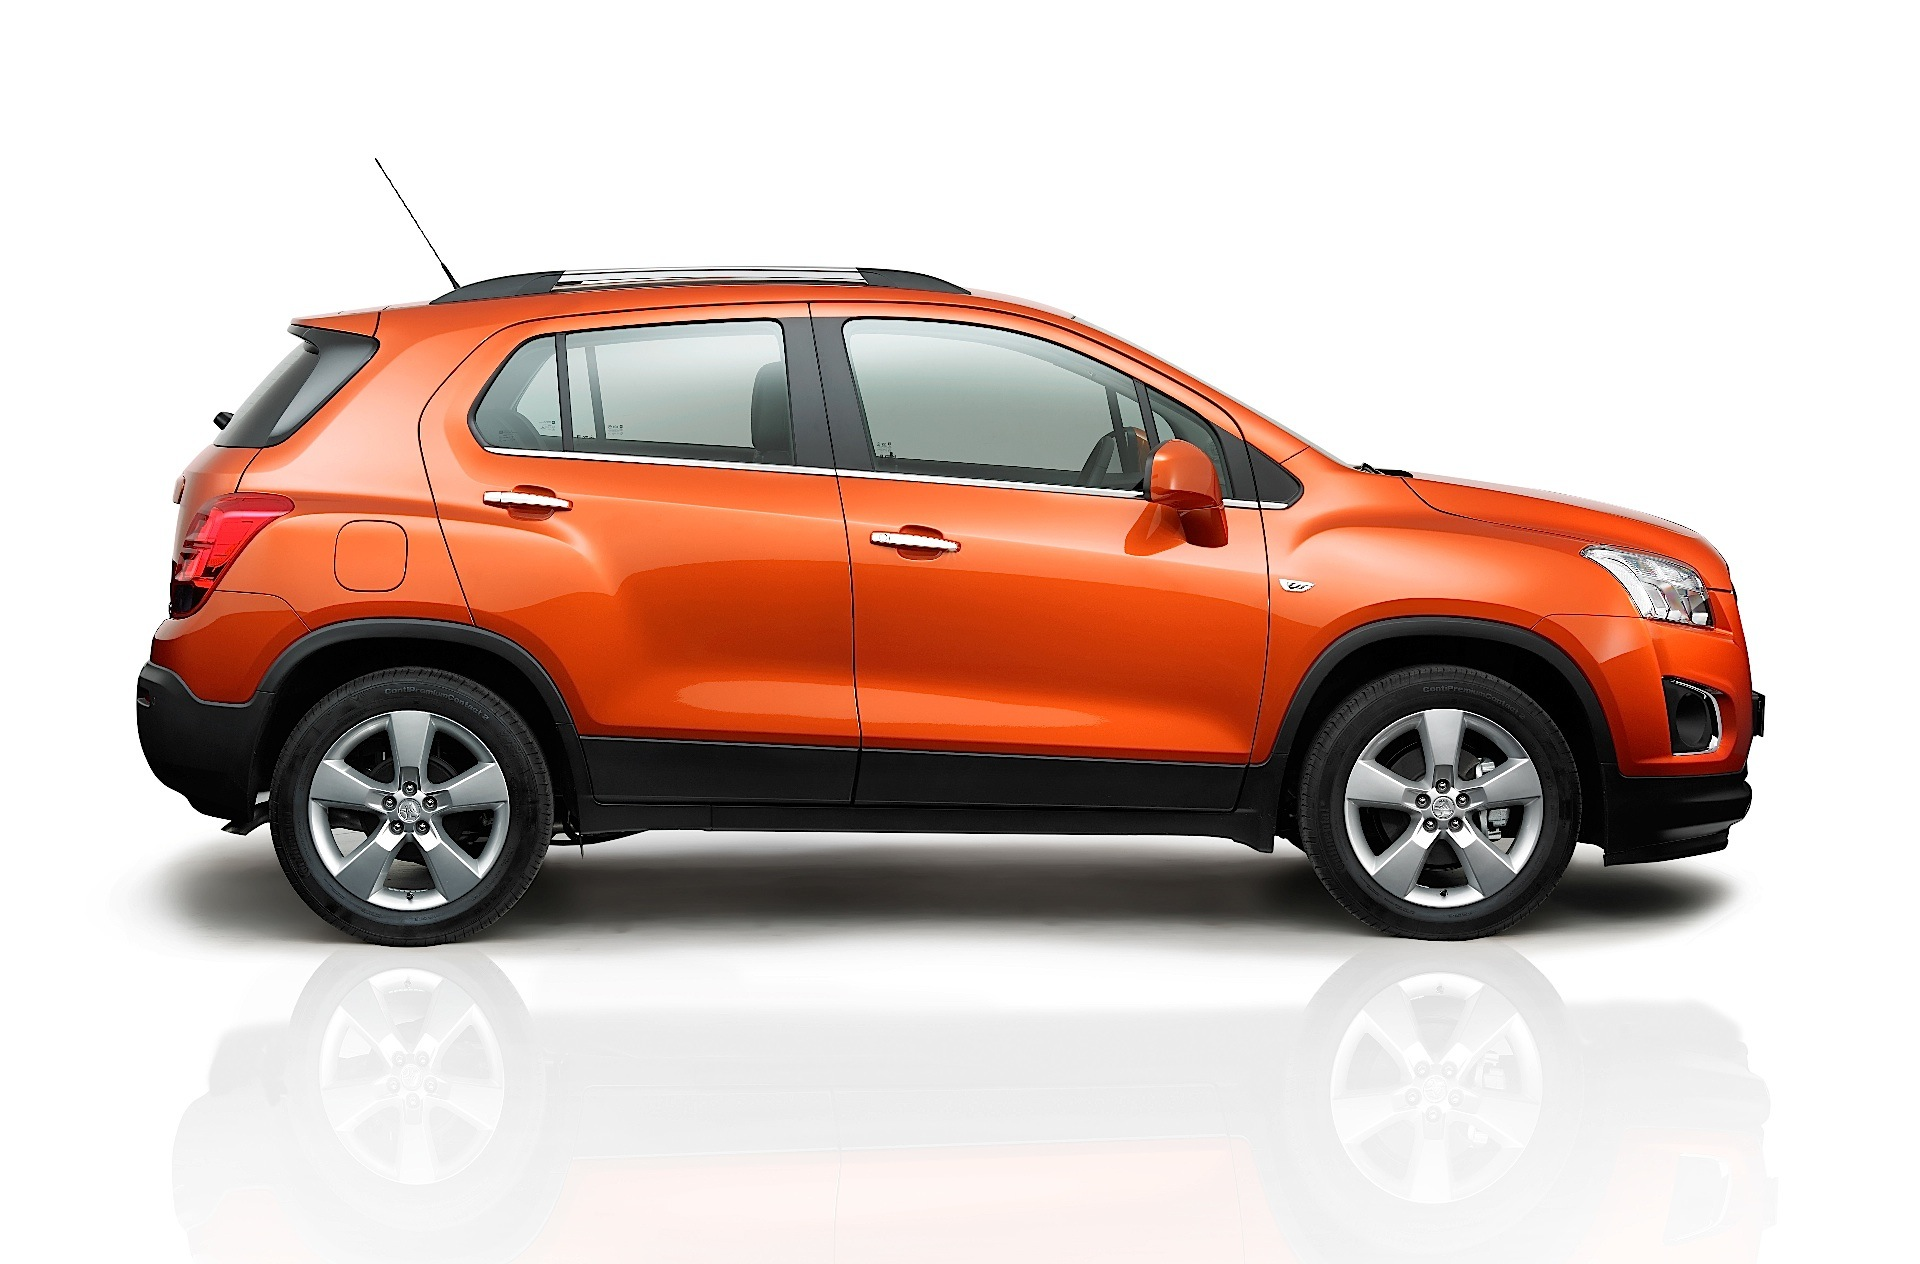 2018 Chevy Trax >> HOLDEN Trax specs & photos - 2013, 2014, 2015, 2016 - autoevolution